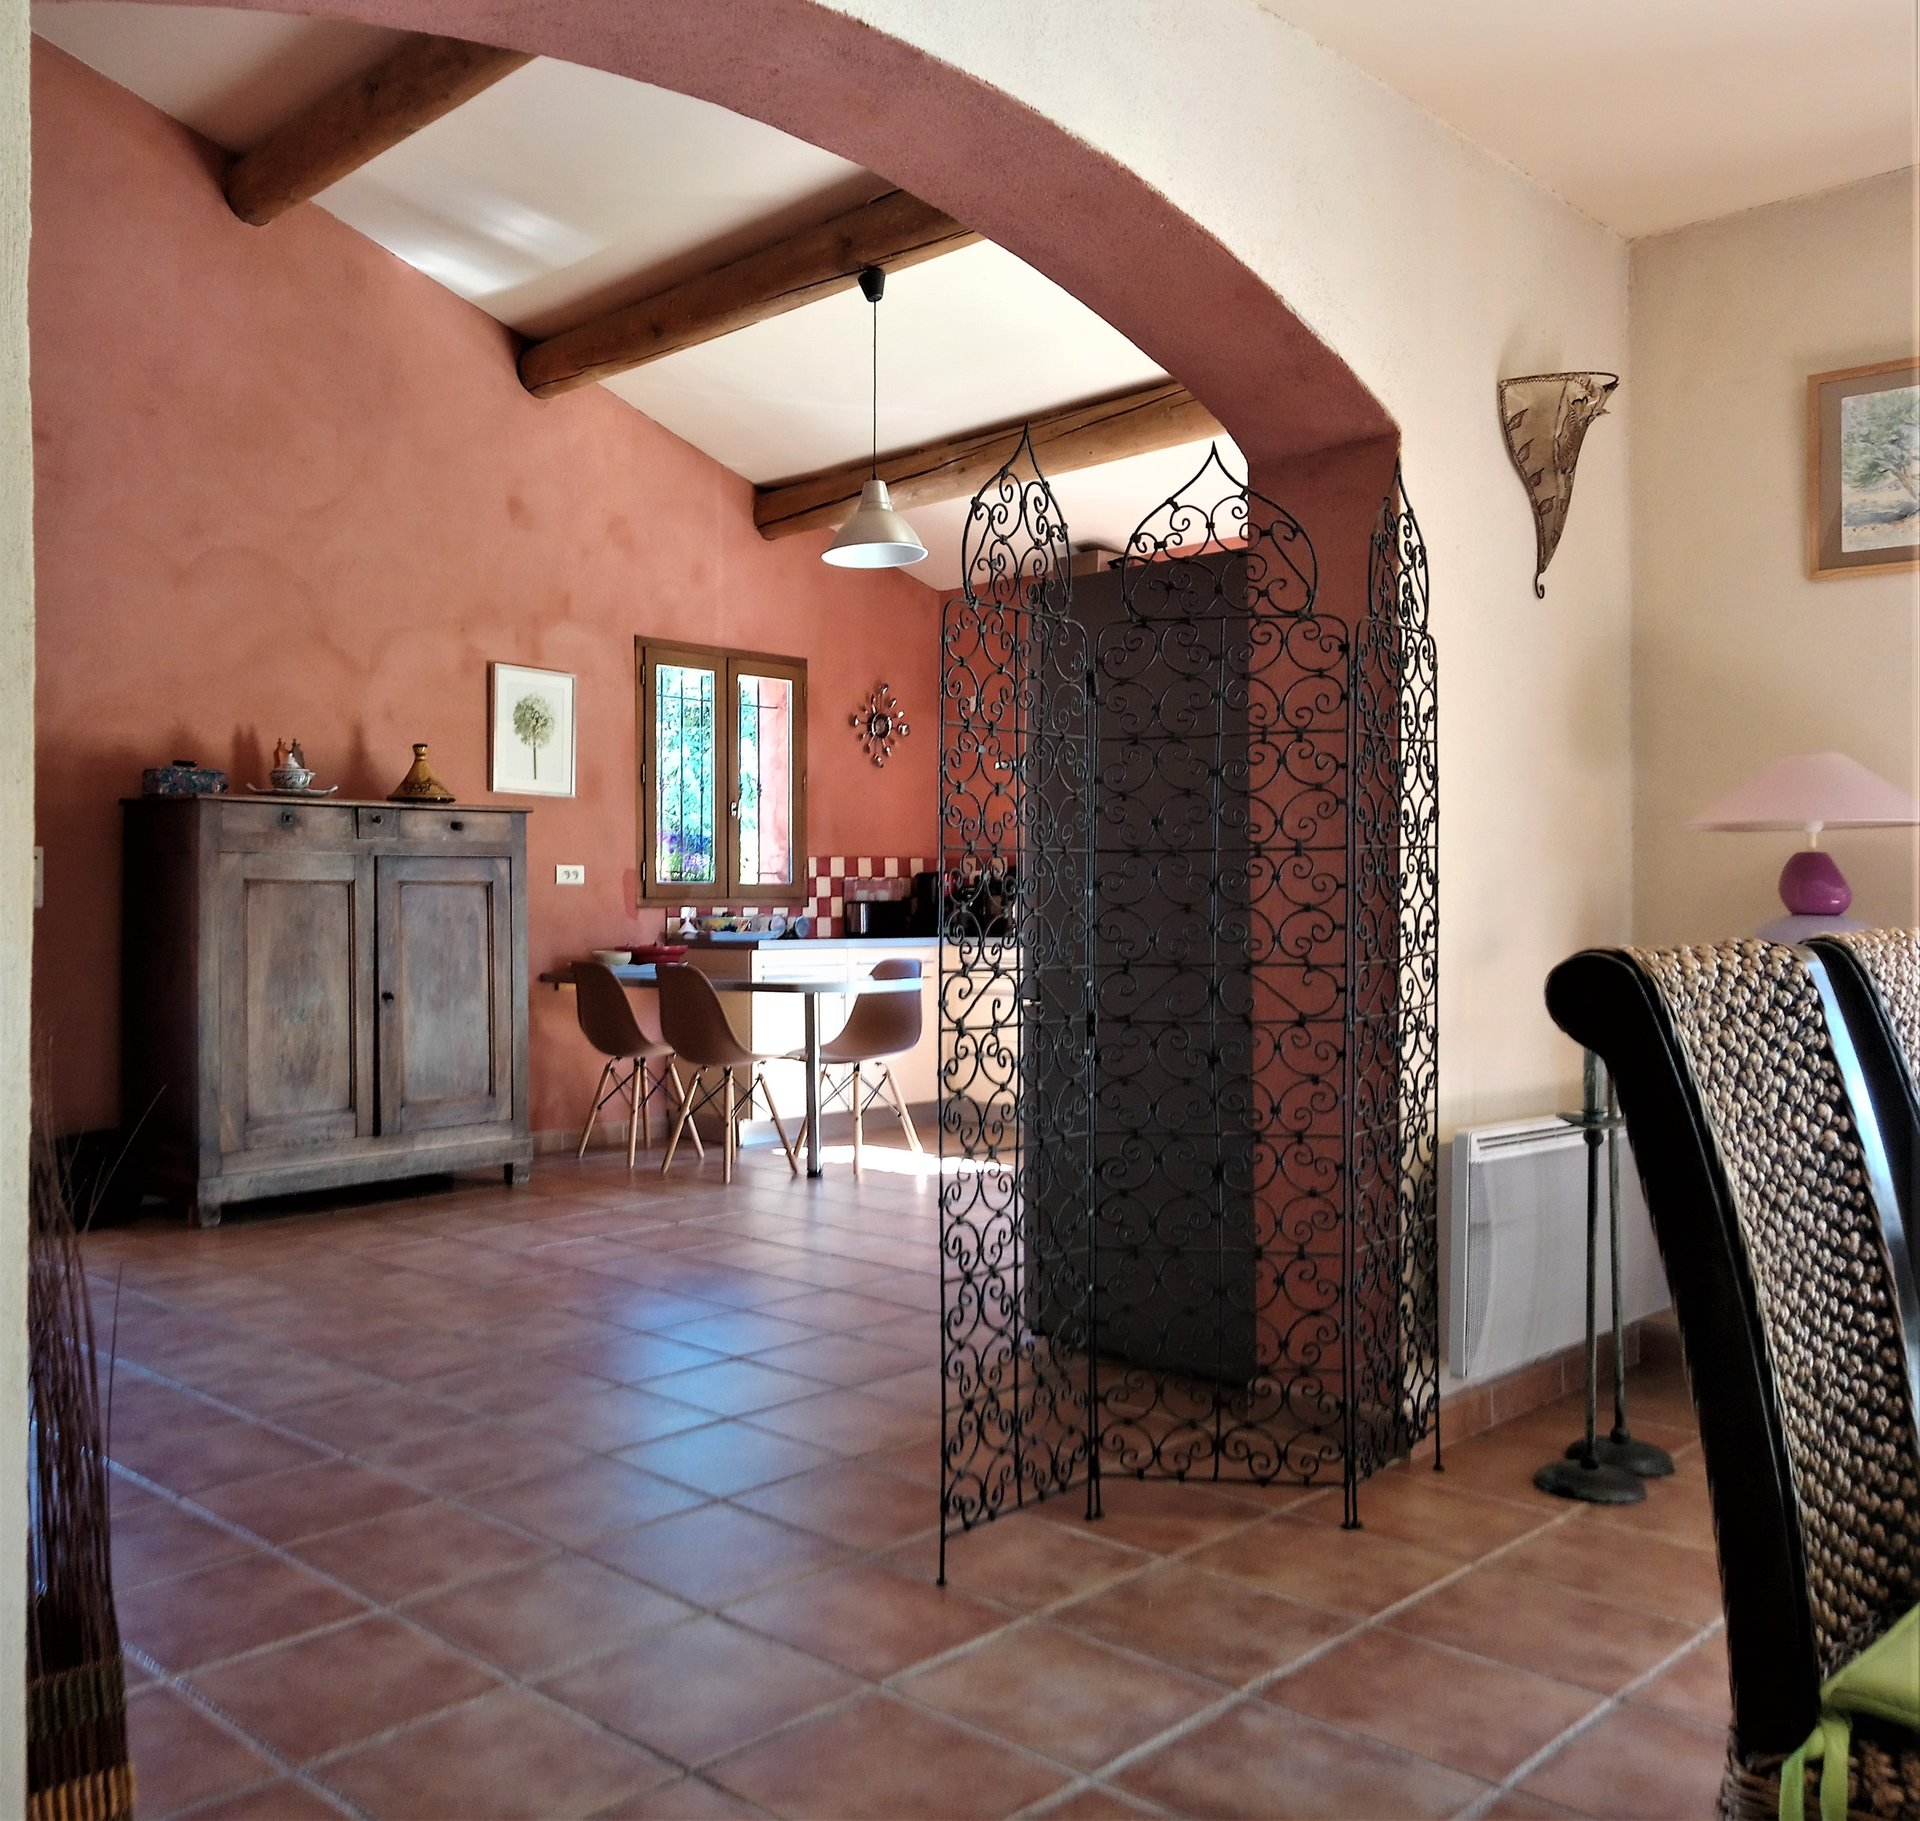 Large house of 165 m² Mediterranean style built on a plot of 1500 m².